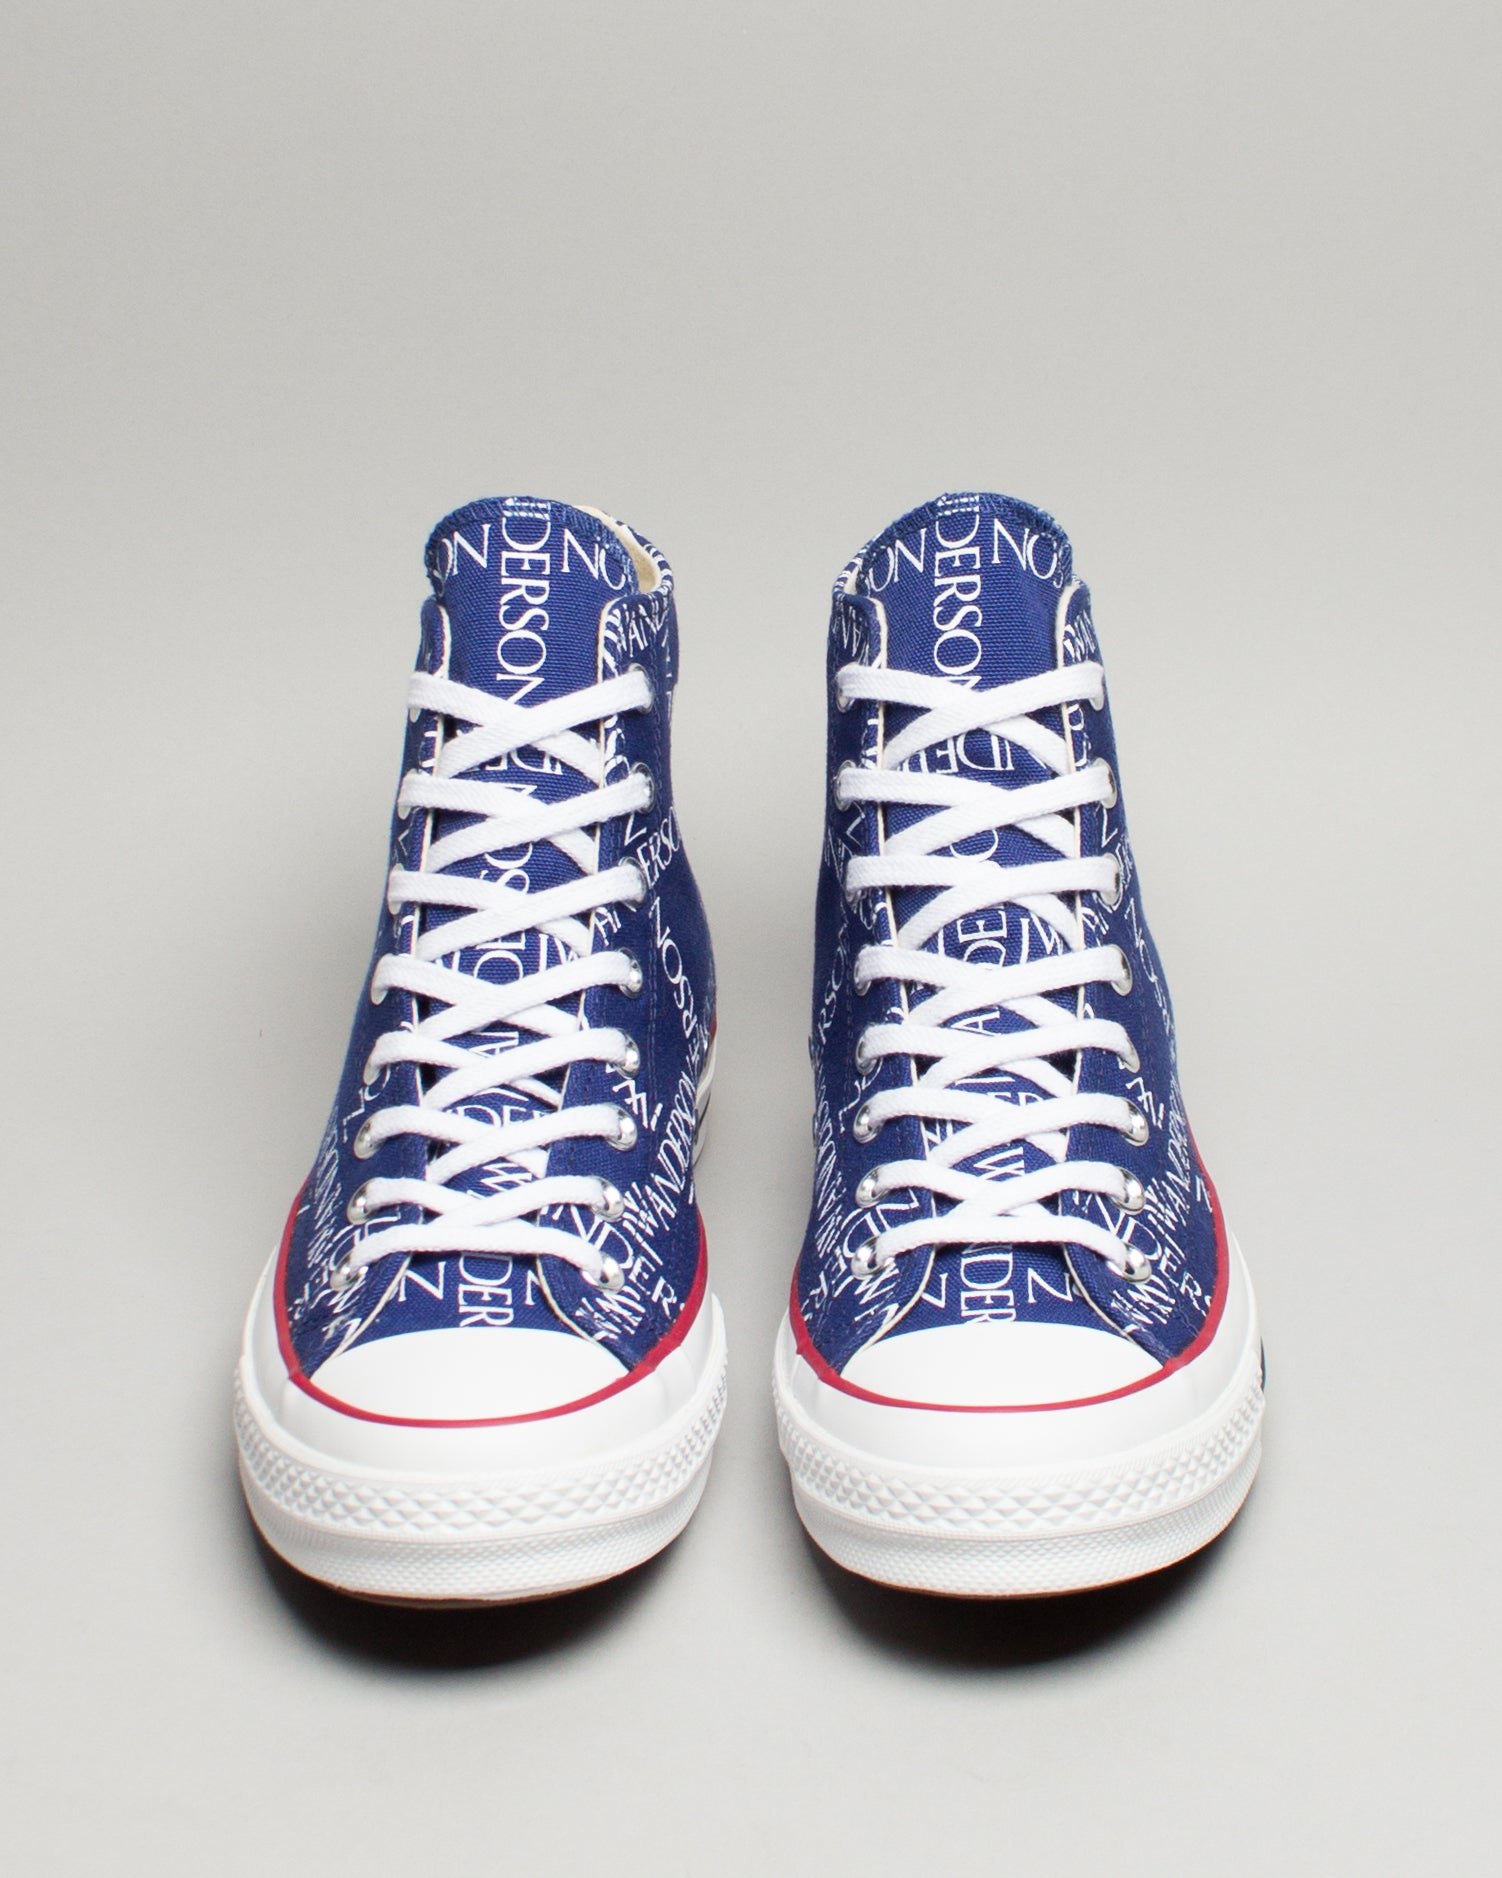 JW Anderson Chuck 70 HI Sailboat Blue